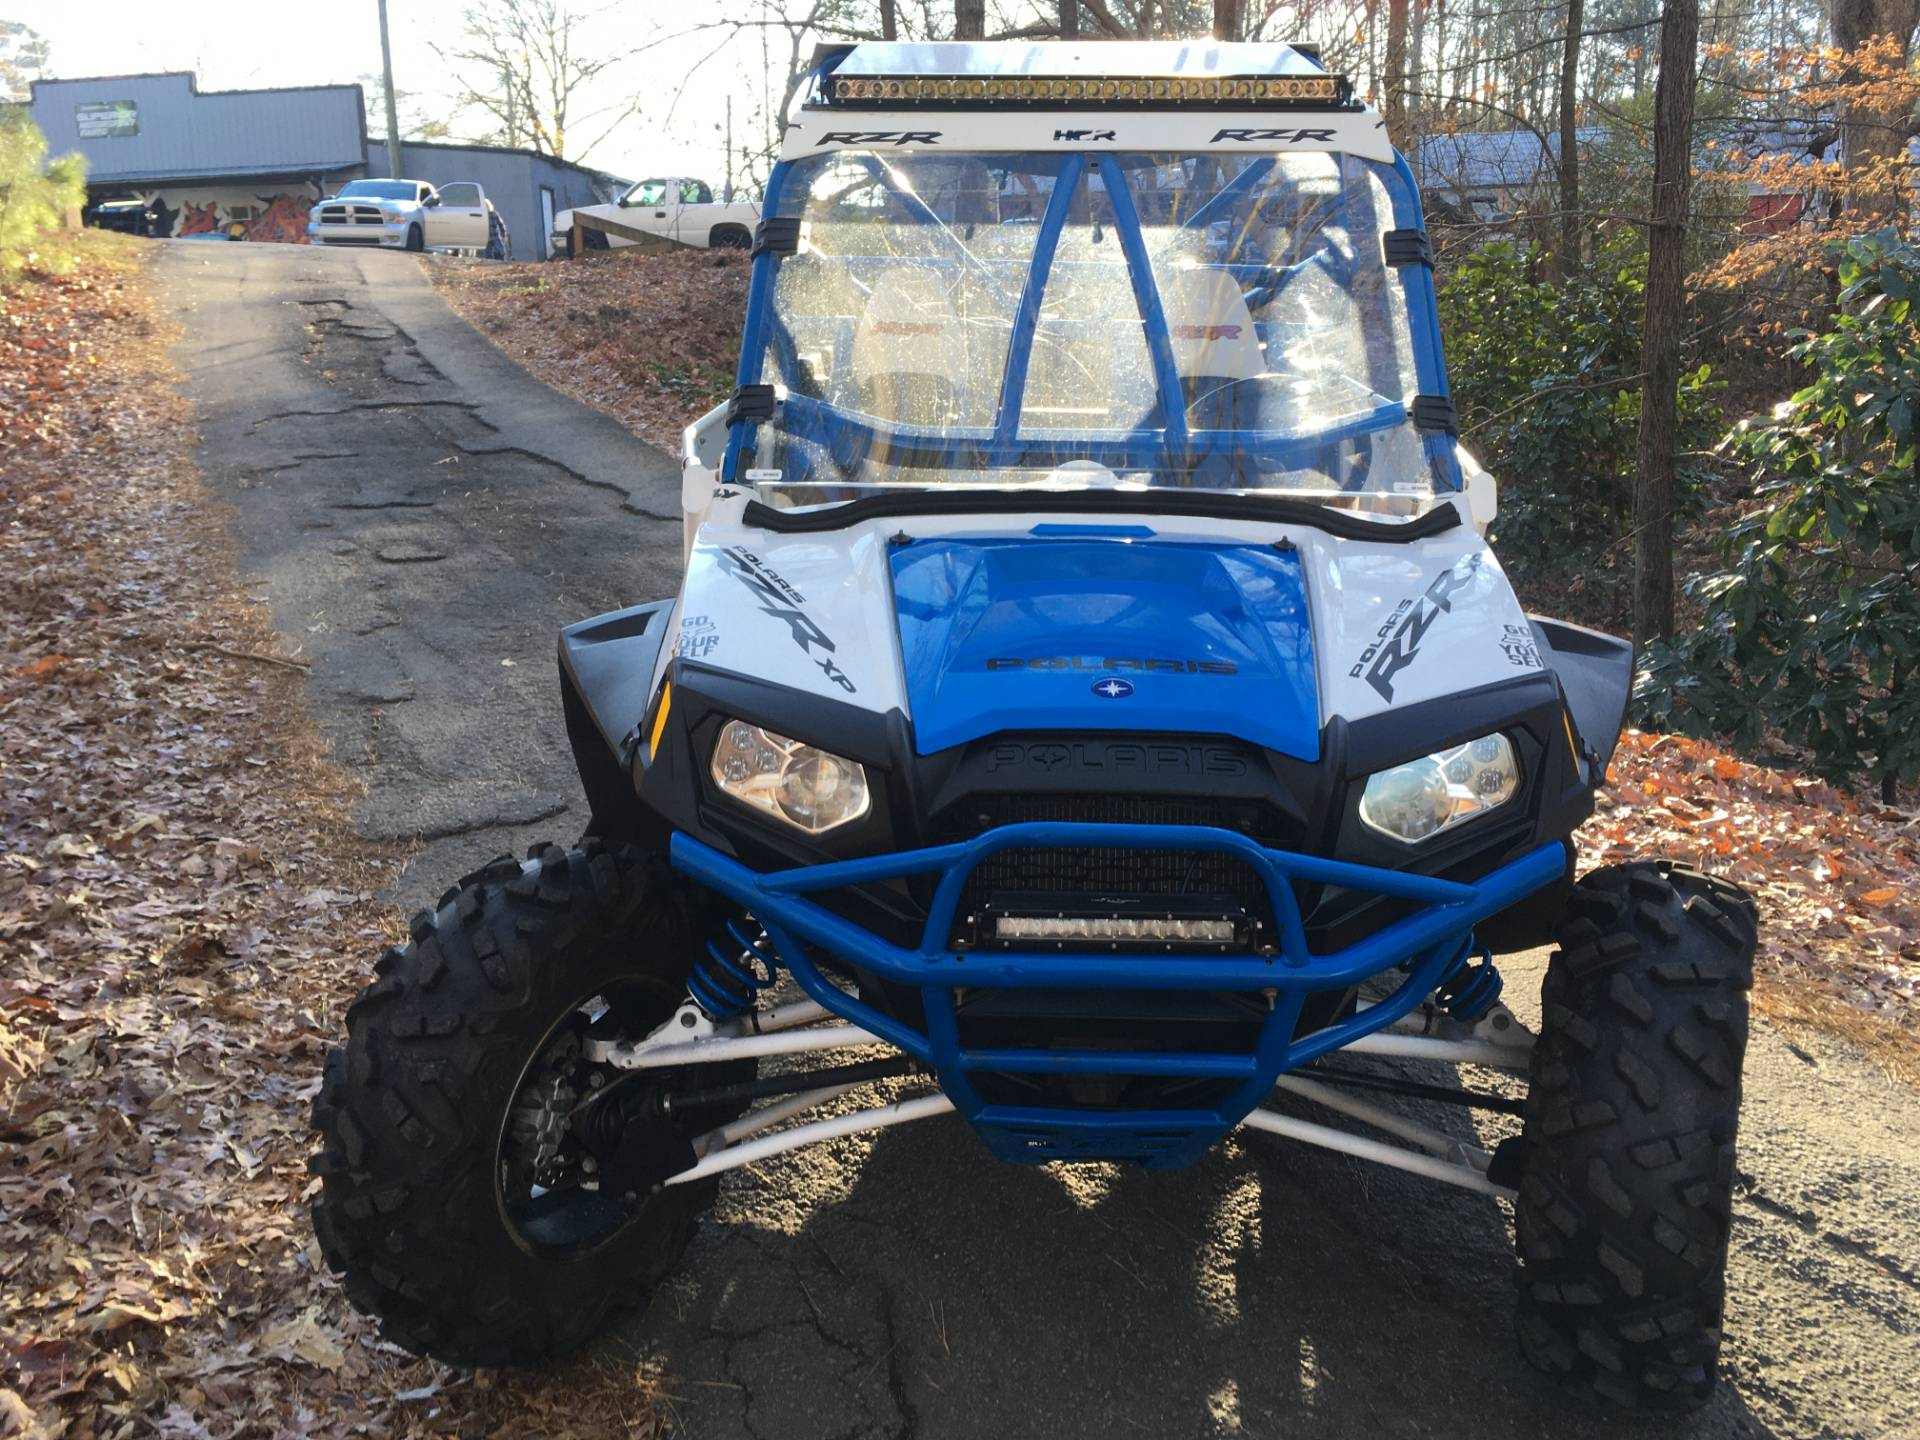 2012 POLARIS RZR 900 XP in Woodstock, Georgia - Photo 6